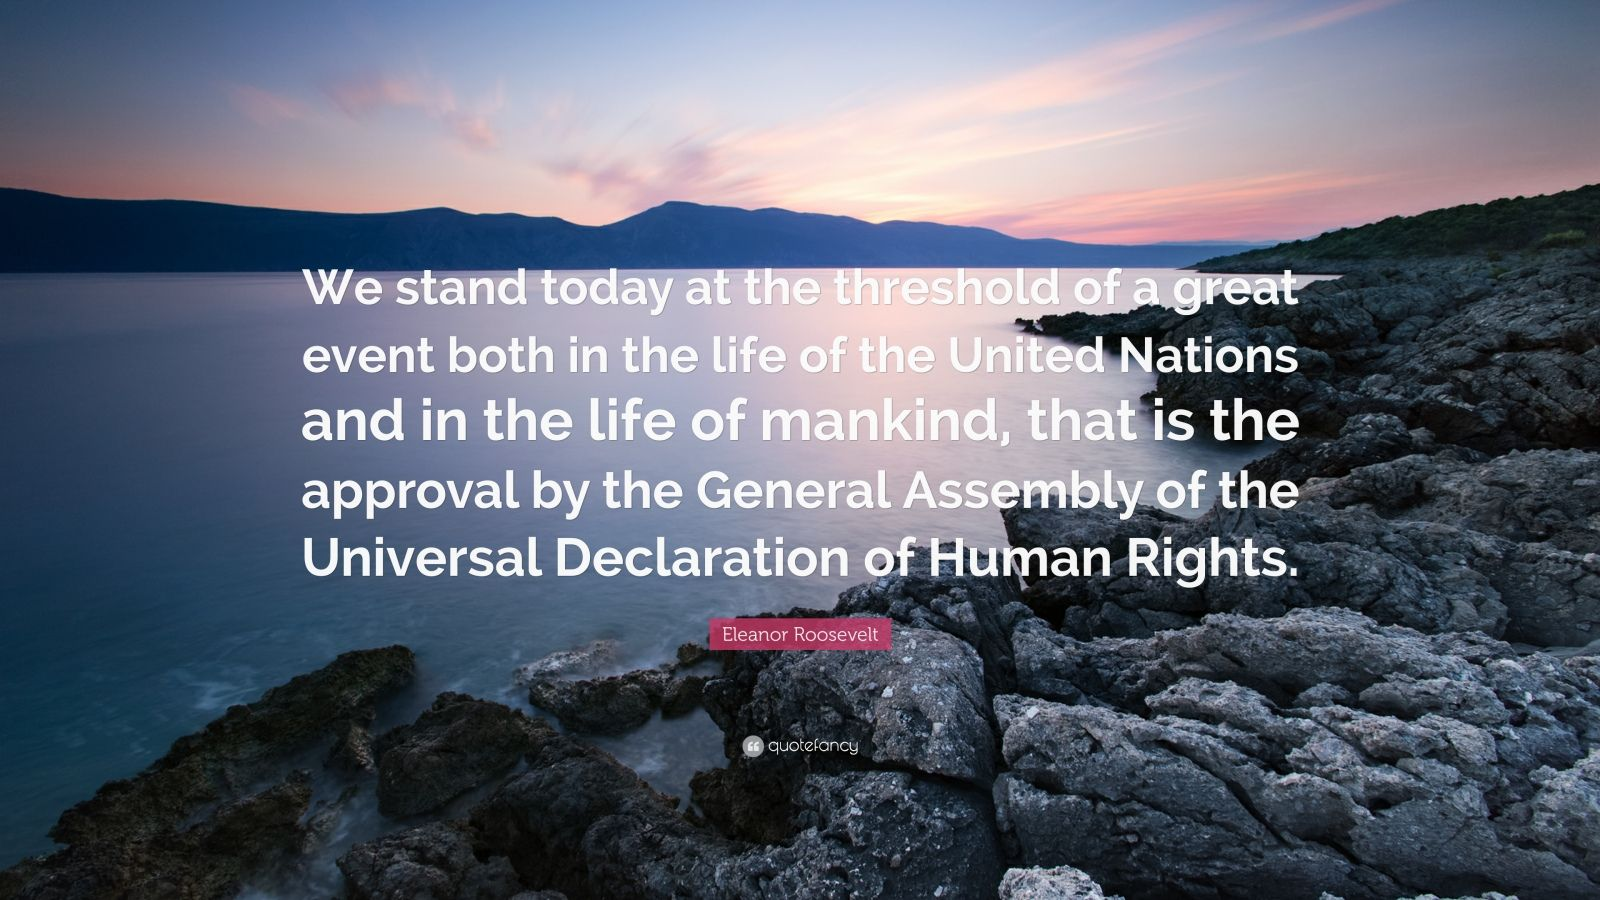 "Eleanor Roosevelt Quote: ""We stand today at the threshold of a great event both in the life of the United Nations and in the life of mankind, that is the approval by the General Assembly of the Universal Declaration of Human Rights."""